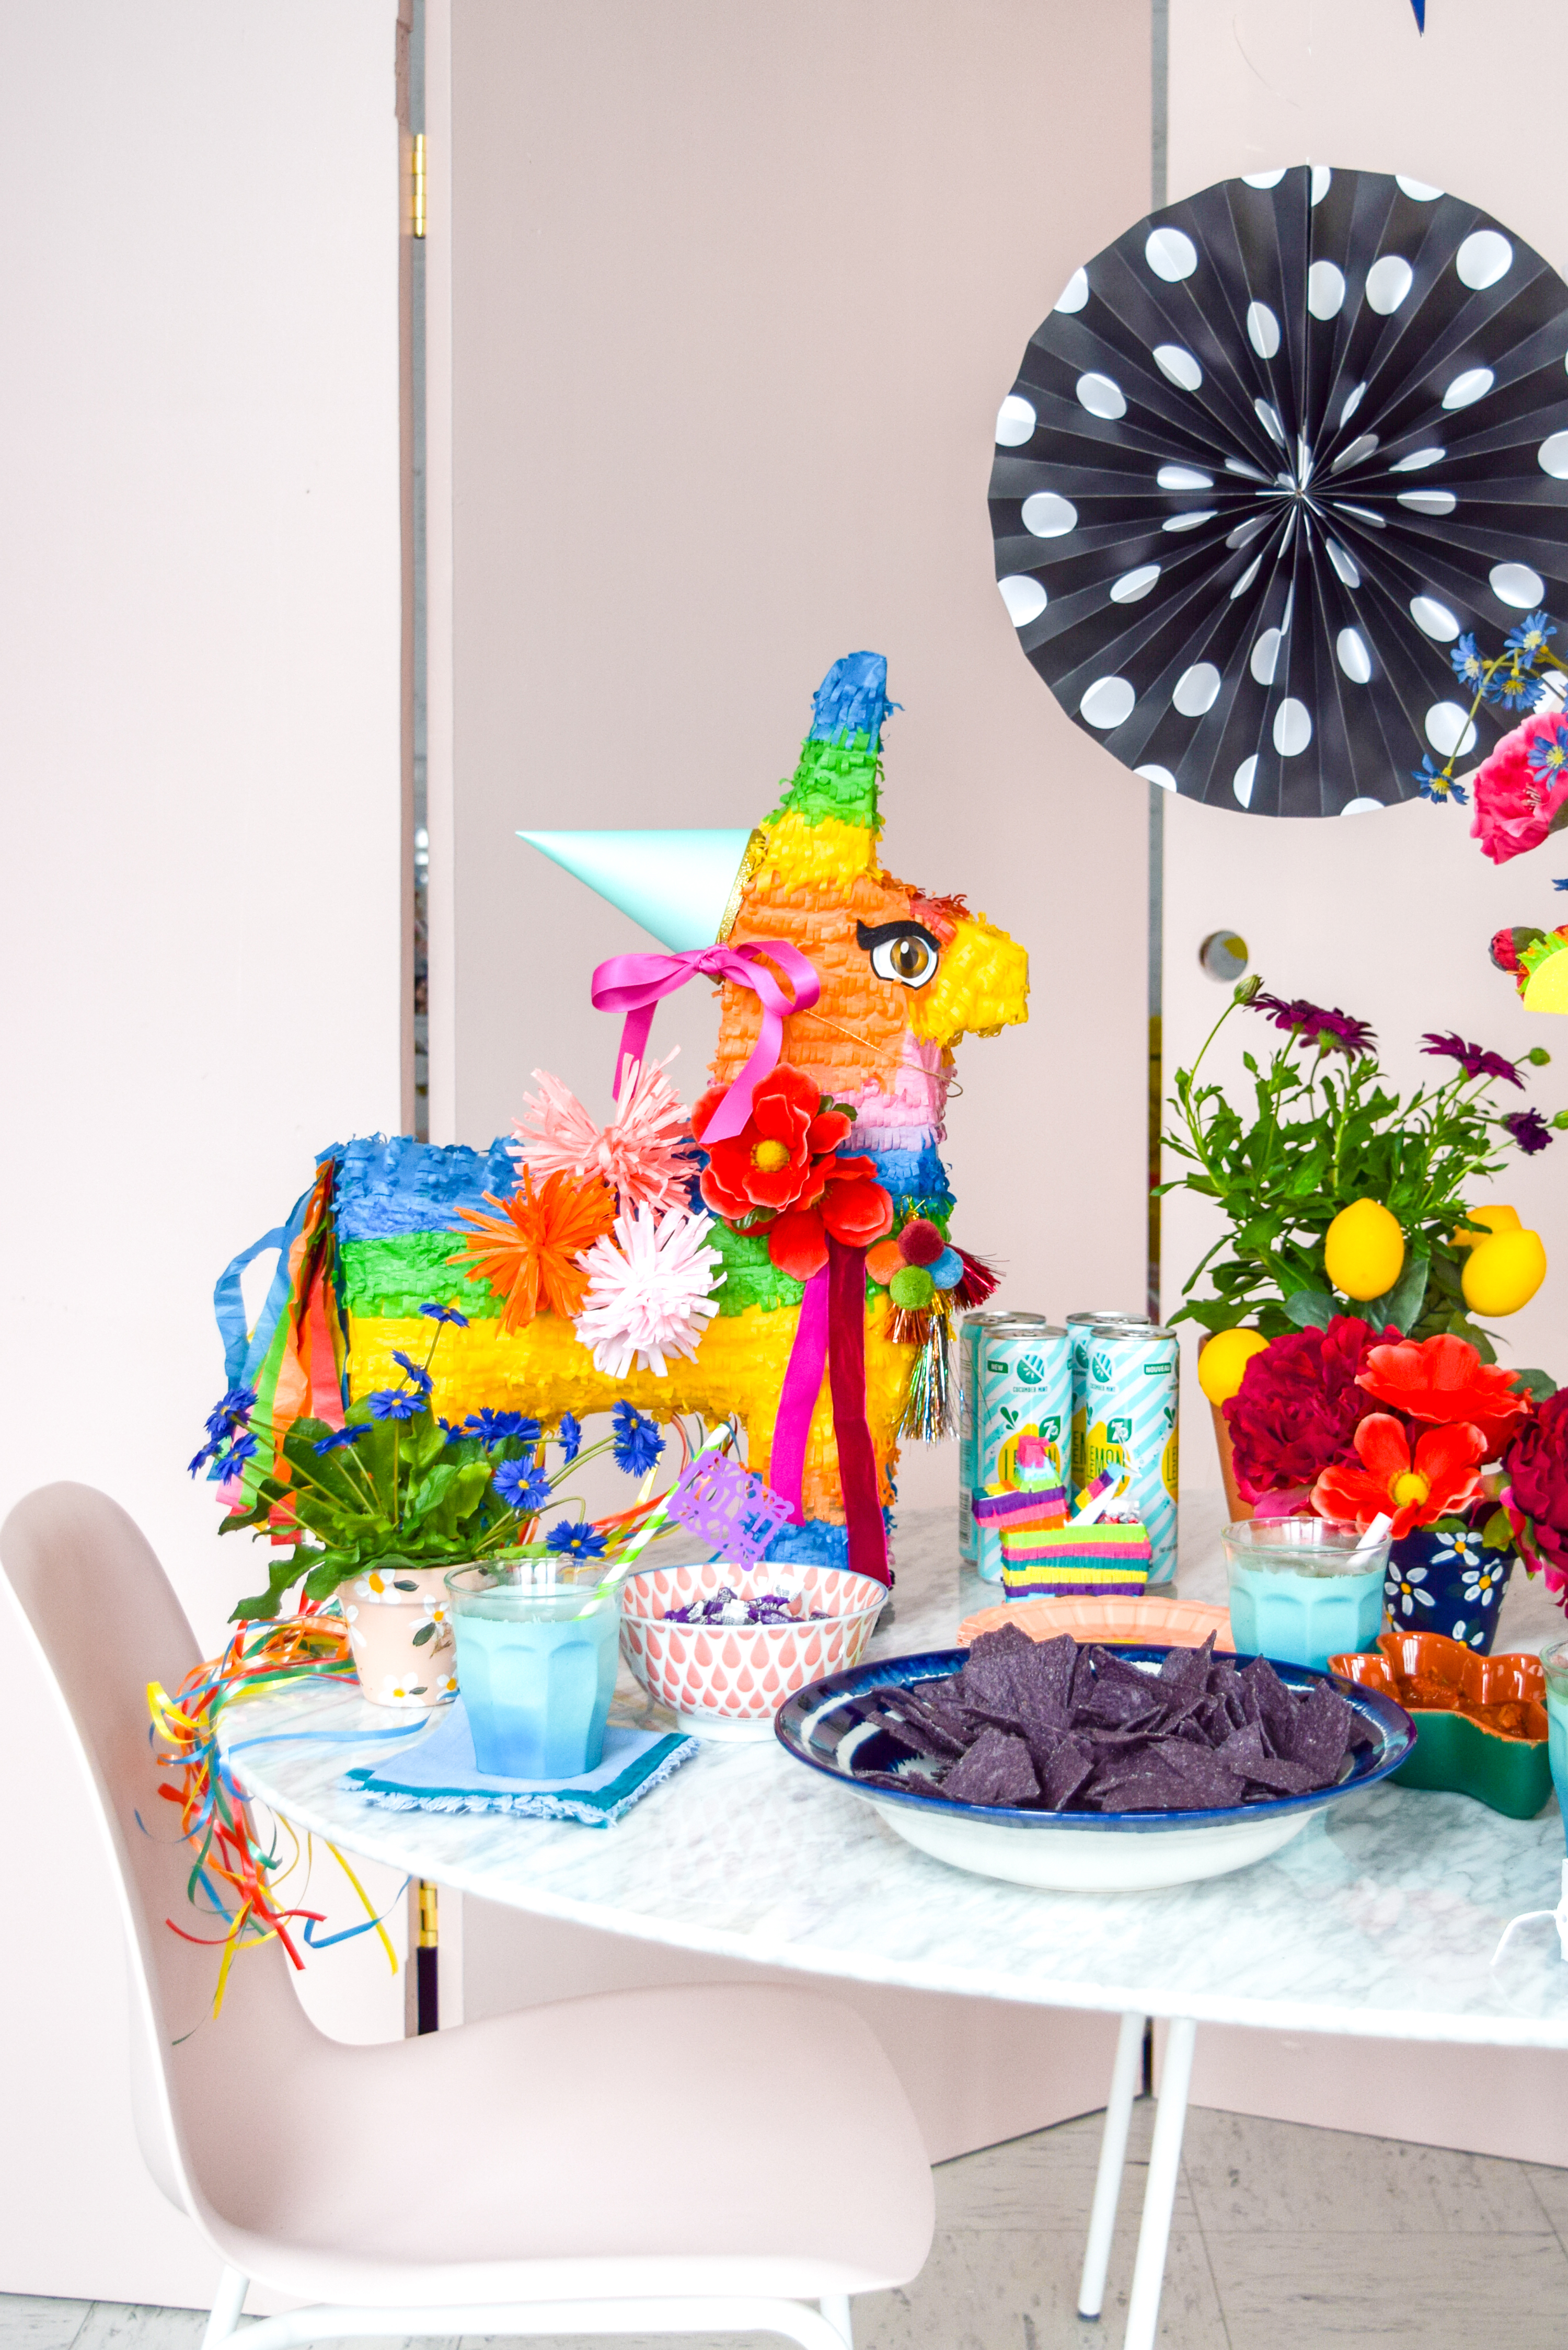 A Cinco de Mayo Party - from start to finish - to help you get the party started! Come see what I made and bought, for this colourful fiesta. Hint: lots of mini pinatas, colourful paper picado, and cocktails. Now, where's my margarita?